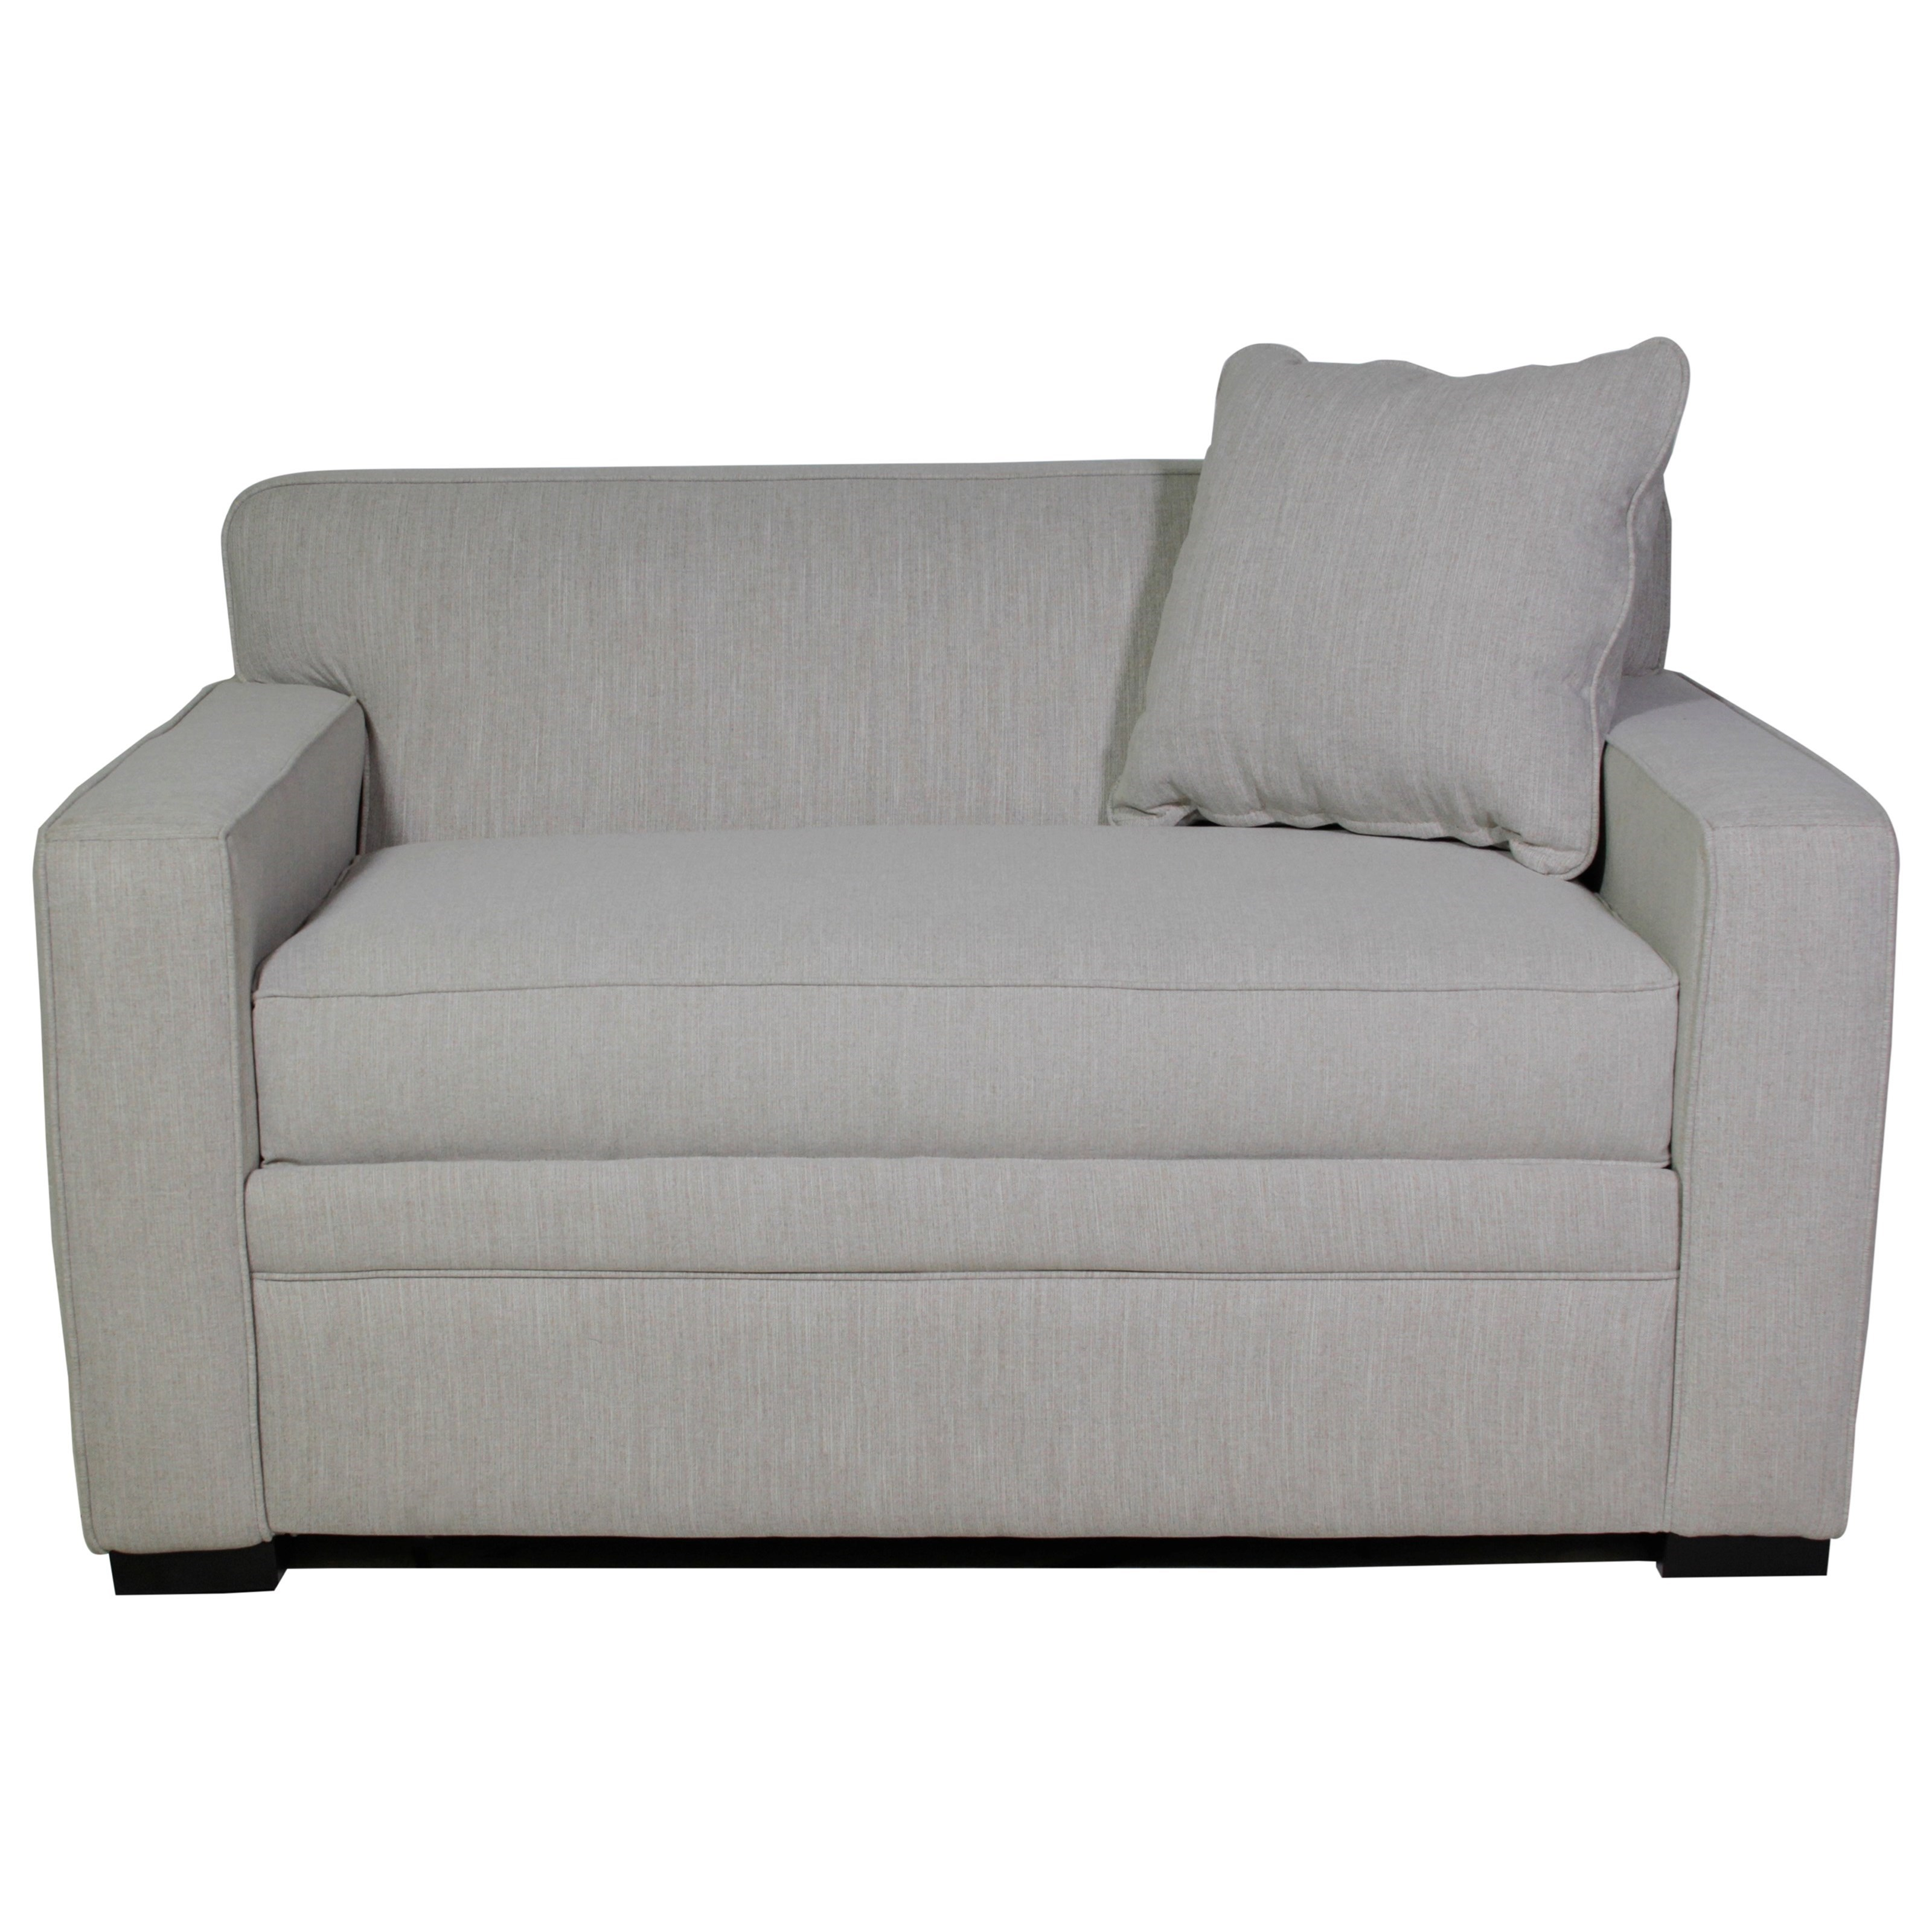 Jonathan Louis Sleepy Chairbed Item Number 106 85sp